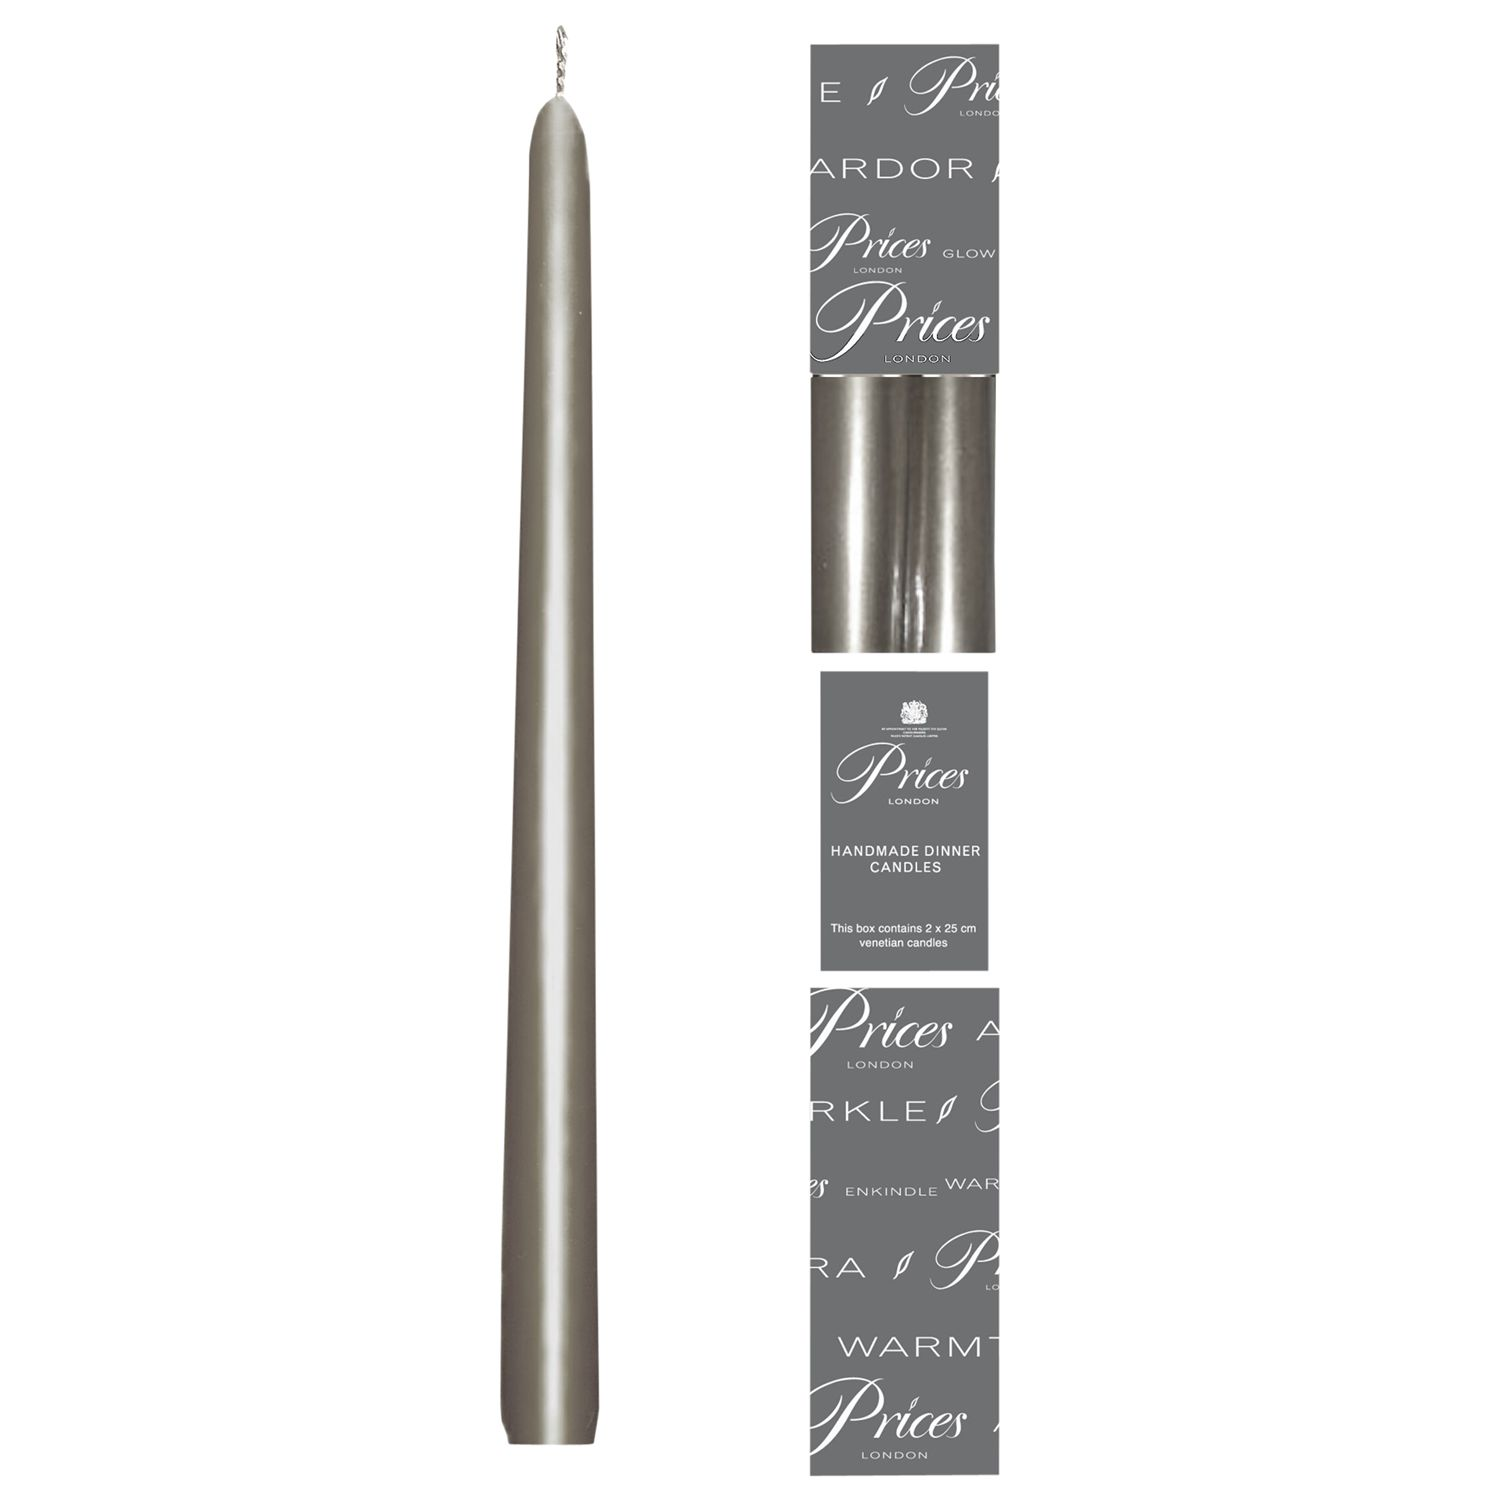 Price's Price's Dinner Candles, Pack of 2, Silver